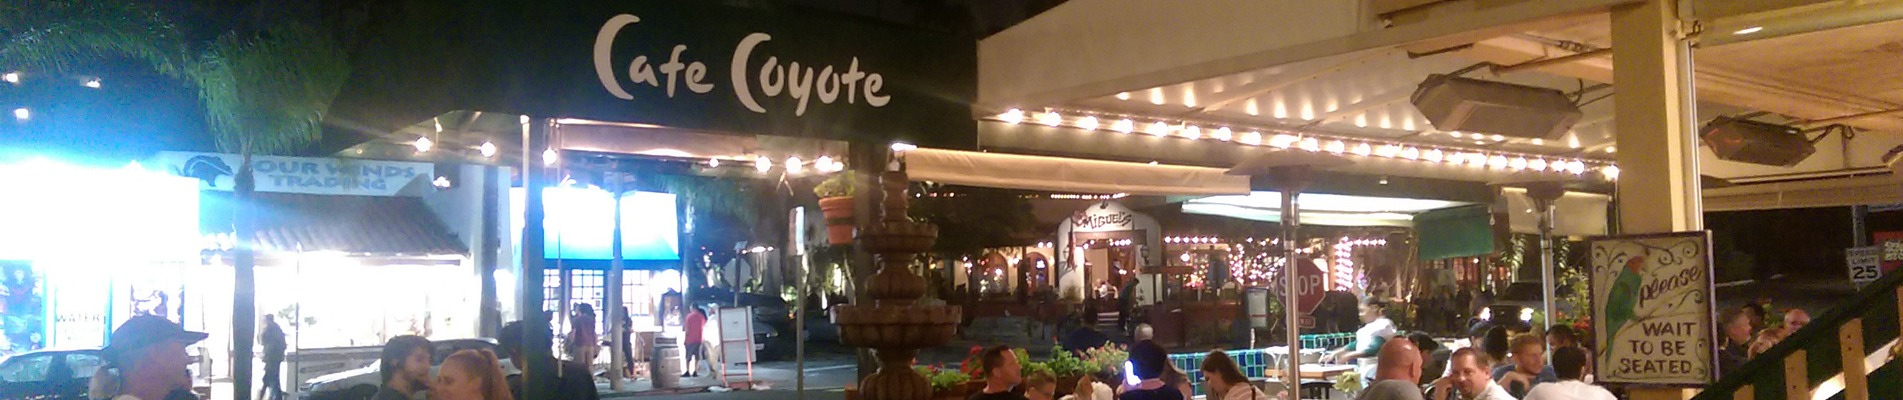 Cafe Coyote in Old Town – San Diego, CA